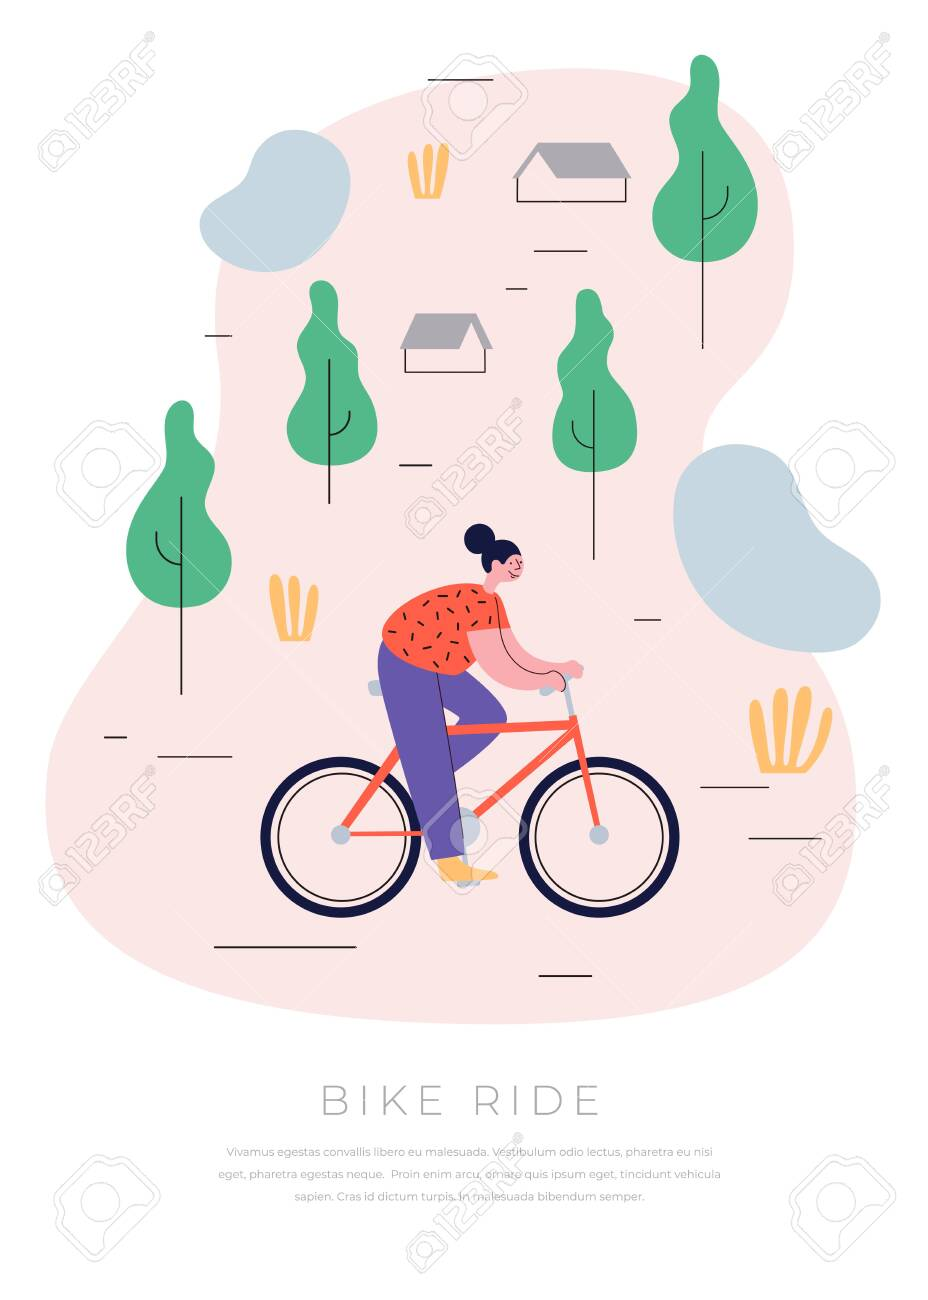 Young cheerful girl riding her bike through the countryside. The concept of an active lifestyle. Ecological mode of transport. Vector illustration in trendy flat style. - 151370613